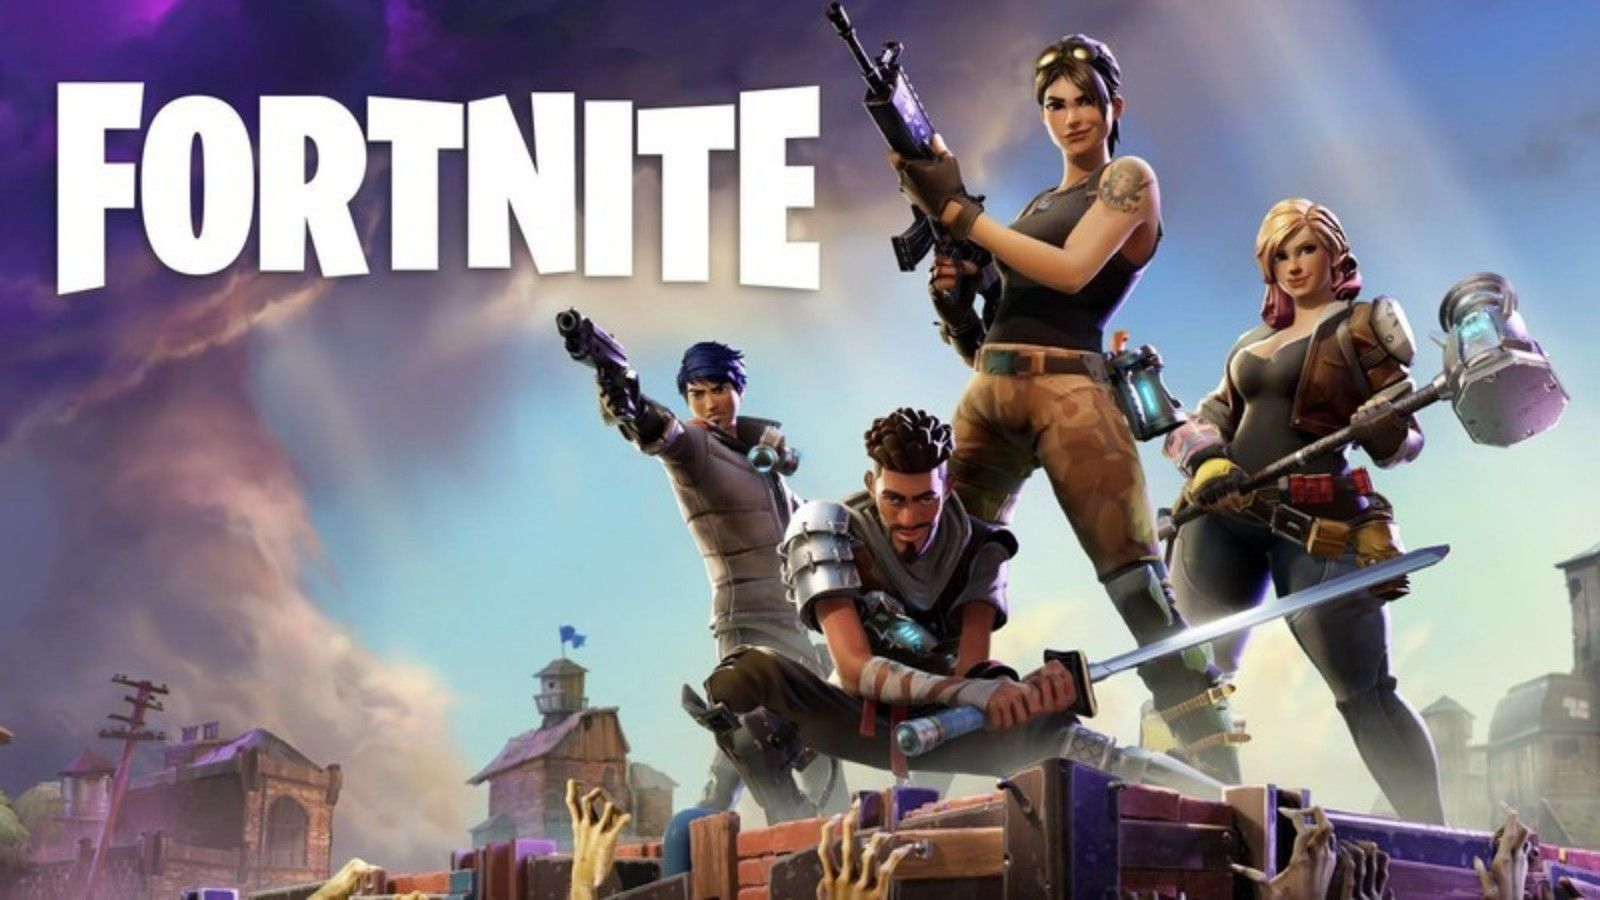 1600x900 Should you buy Fortnite for PS4, or is the free version good enough ...